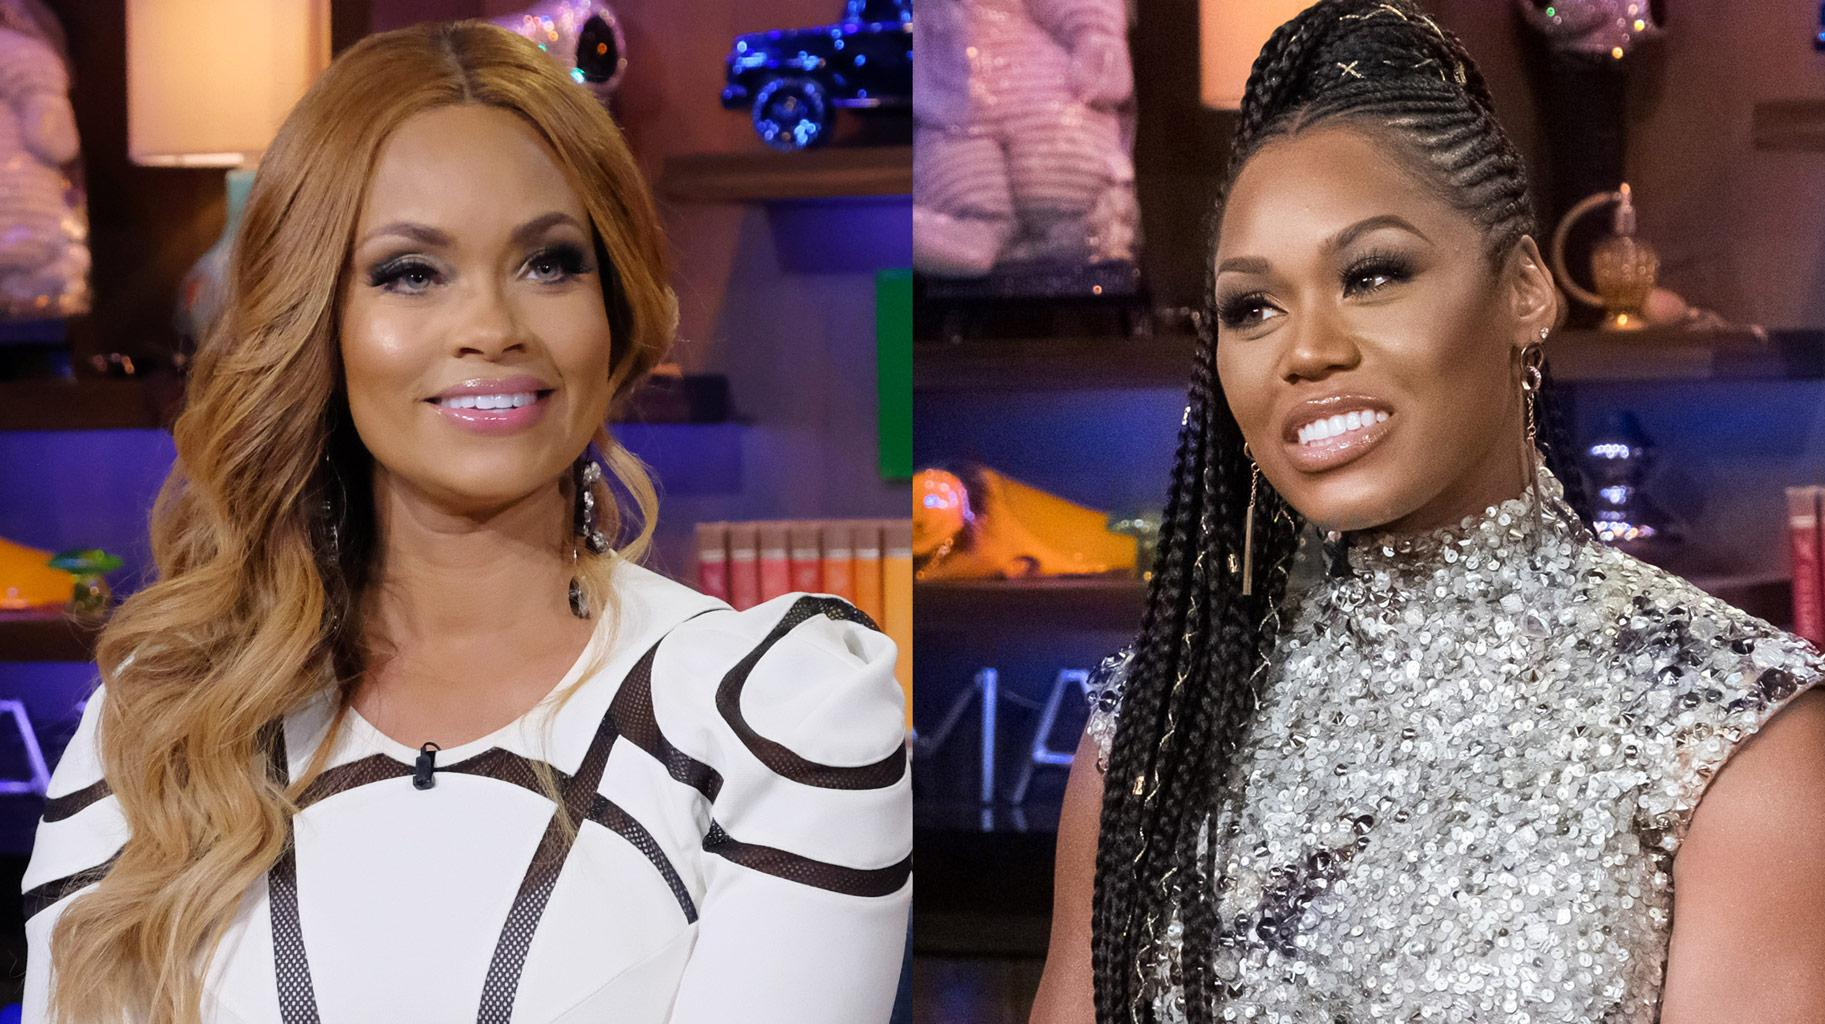 Gizelle Bryant Accuses Her Co-Star Monique Samuels Of Glorifying Violence With New Song